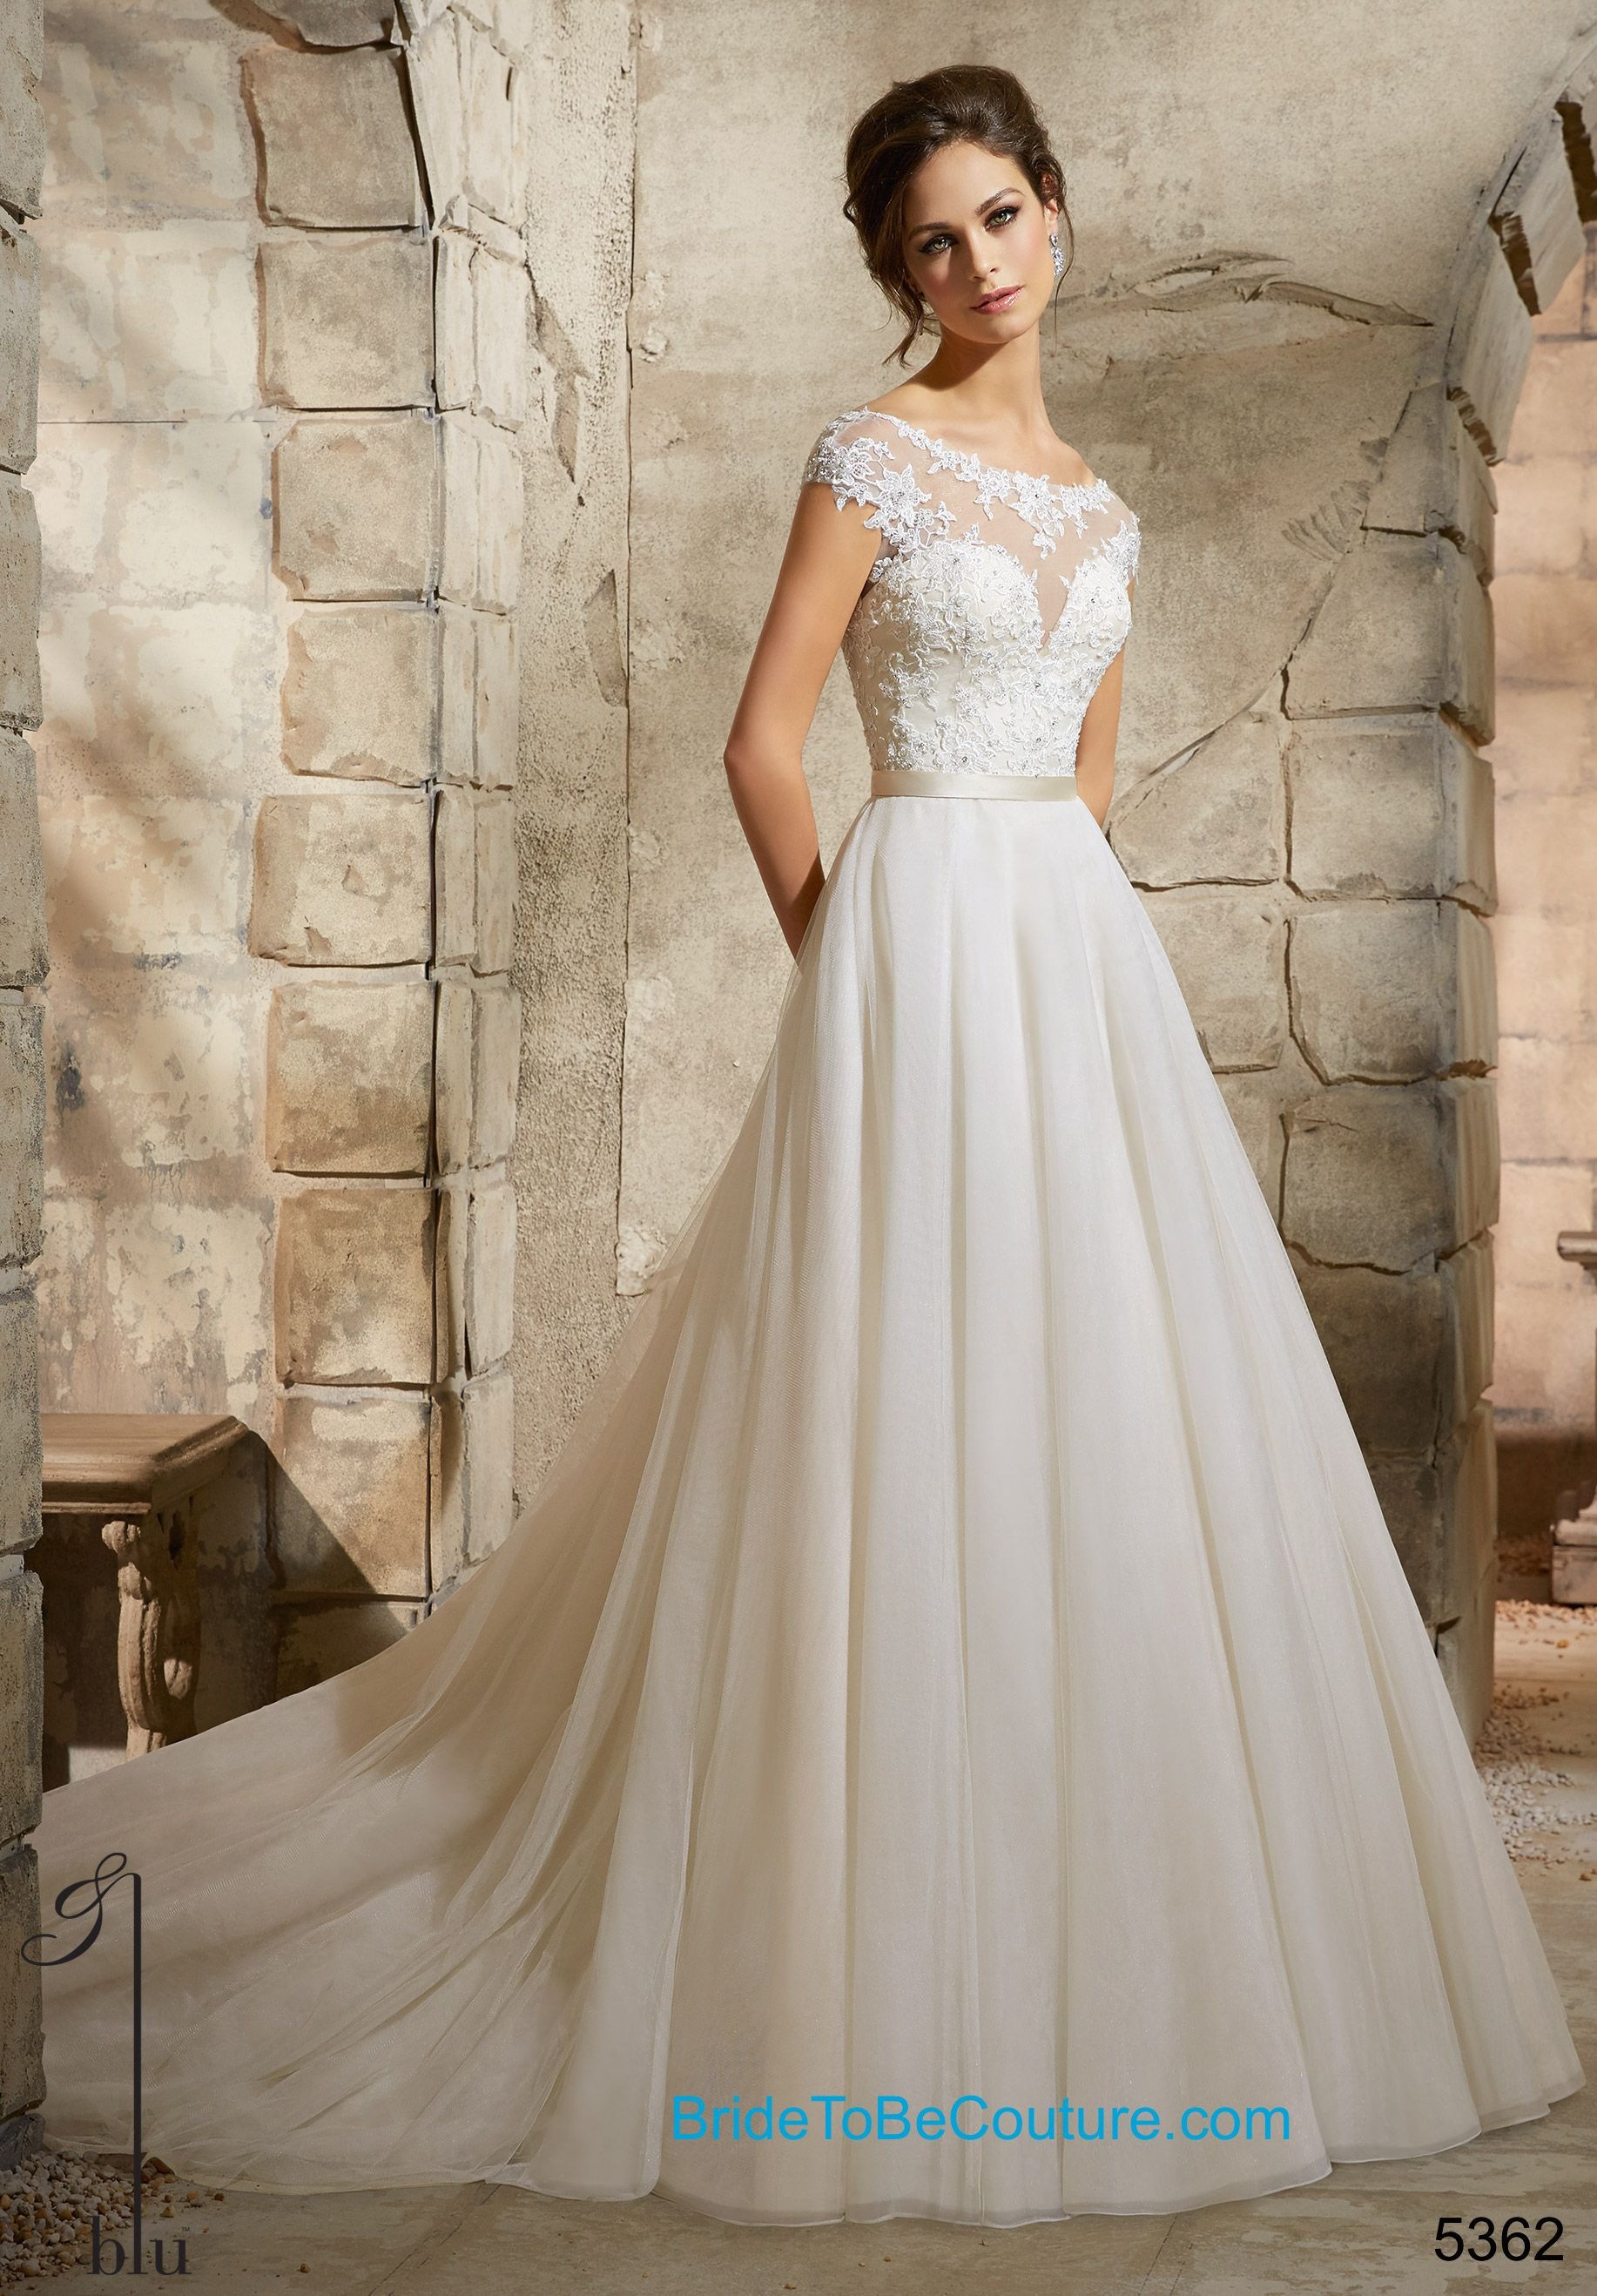 Whether you are looking for bridal gowns, prom dresses, or formal bridesmaid dresses for your bridesmaids, Mori lee has the look that will fit your style and budget.... (more)